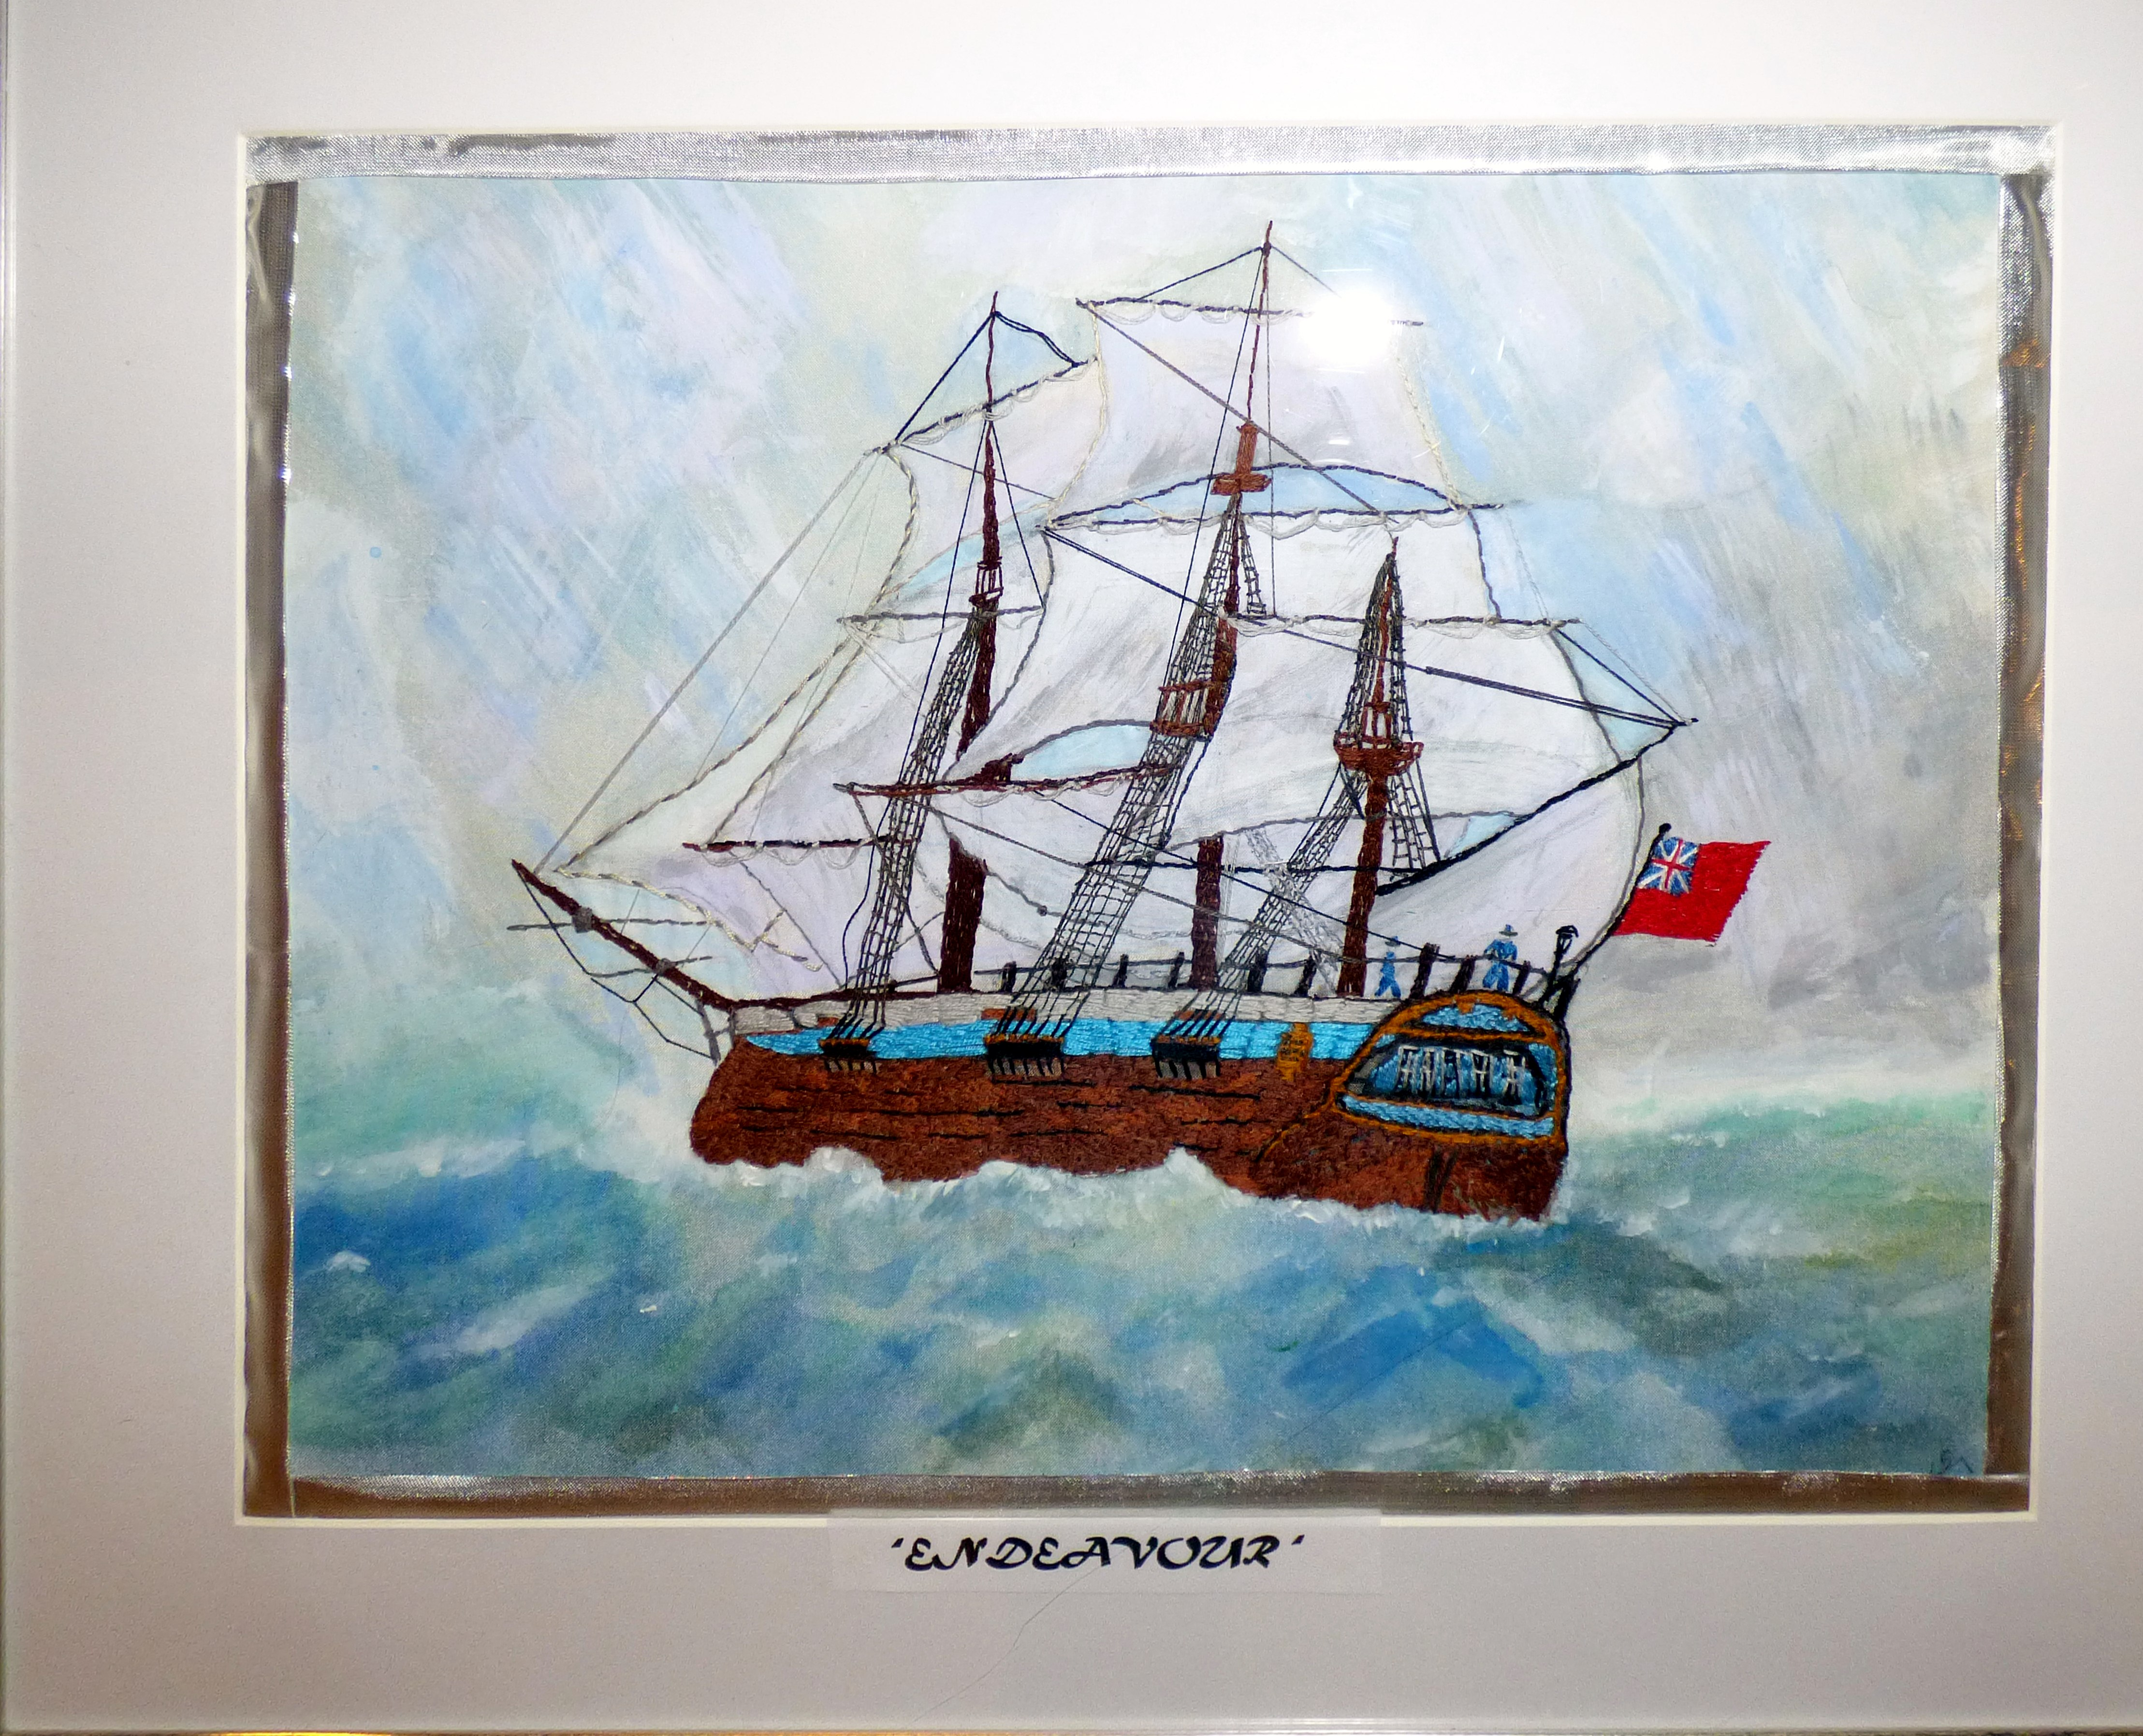 ENDEAVOUR by Kathy Green, painted on silk, hand embroidery, Endeavour exhibition, Liverpool Cathedral, Sept 2018